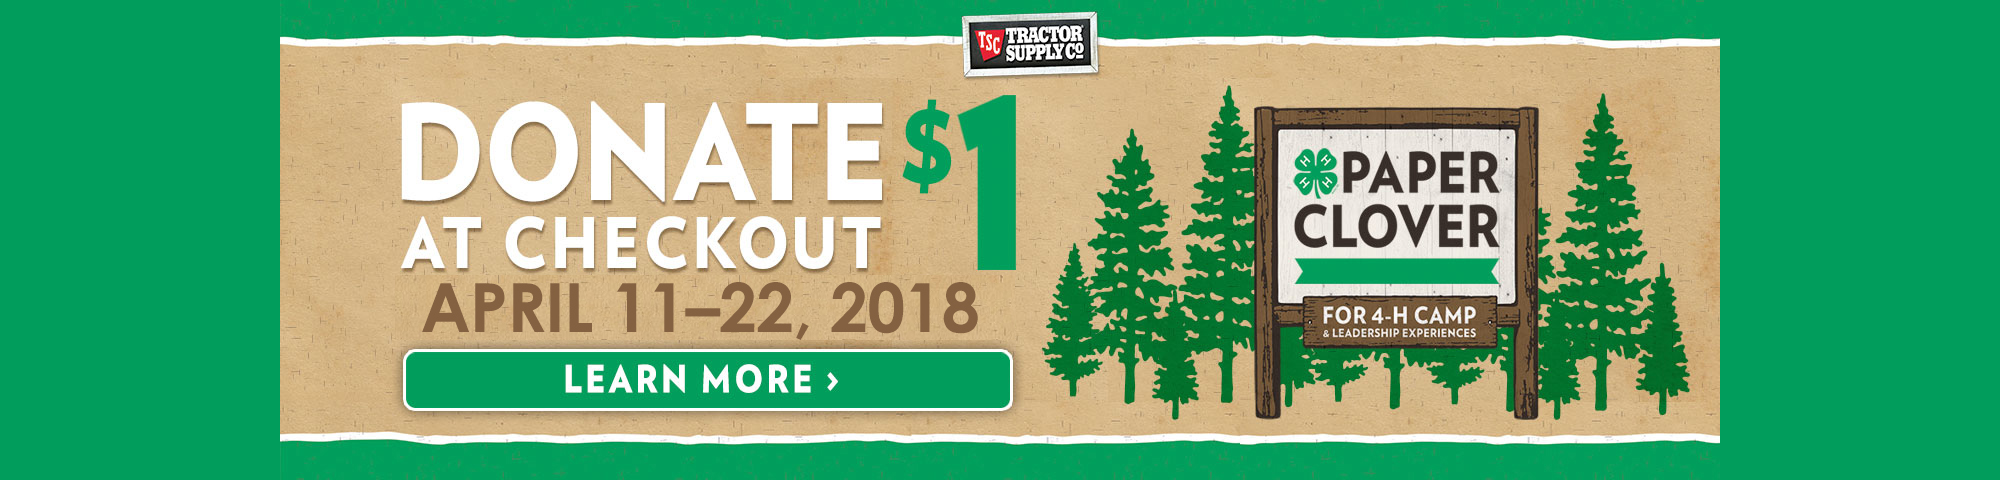 TSC Paper Clover Campaign - Donate $1 at checkout Apr. 11-22, 2018. Click here to learn more.